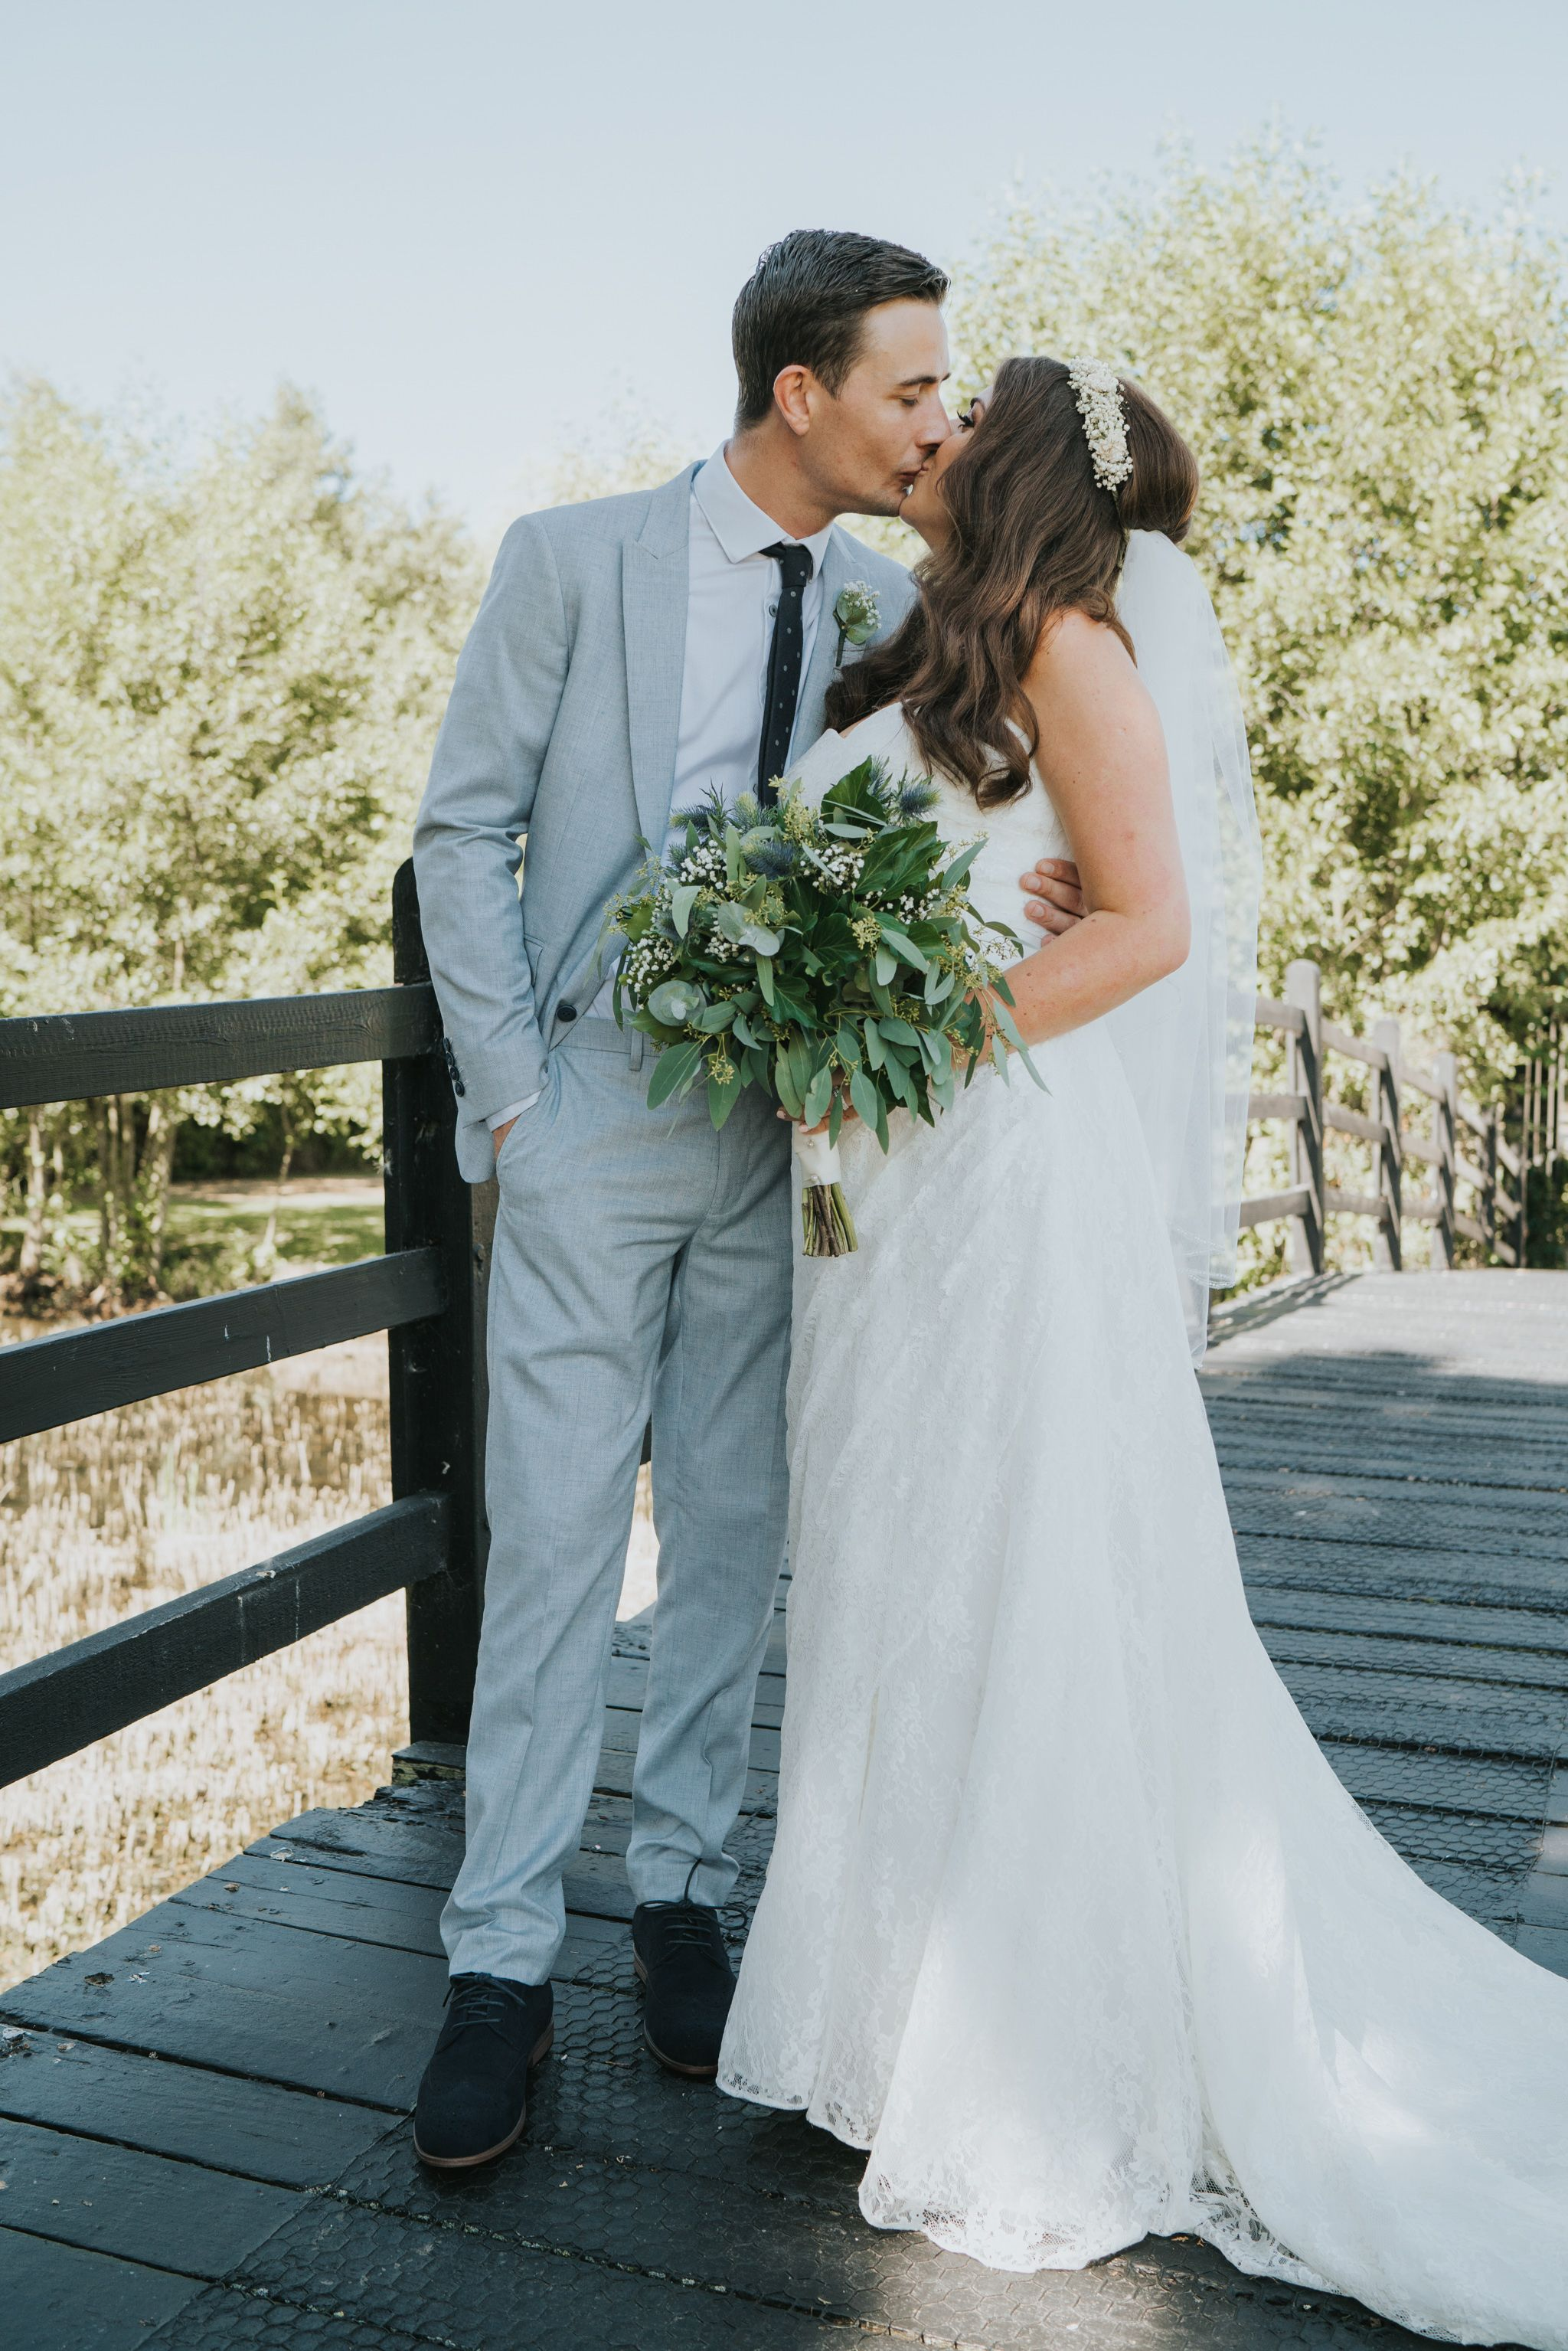 Cute portrait of bride and groom kissing on a bridge relaxed